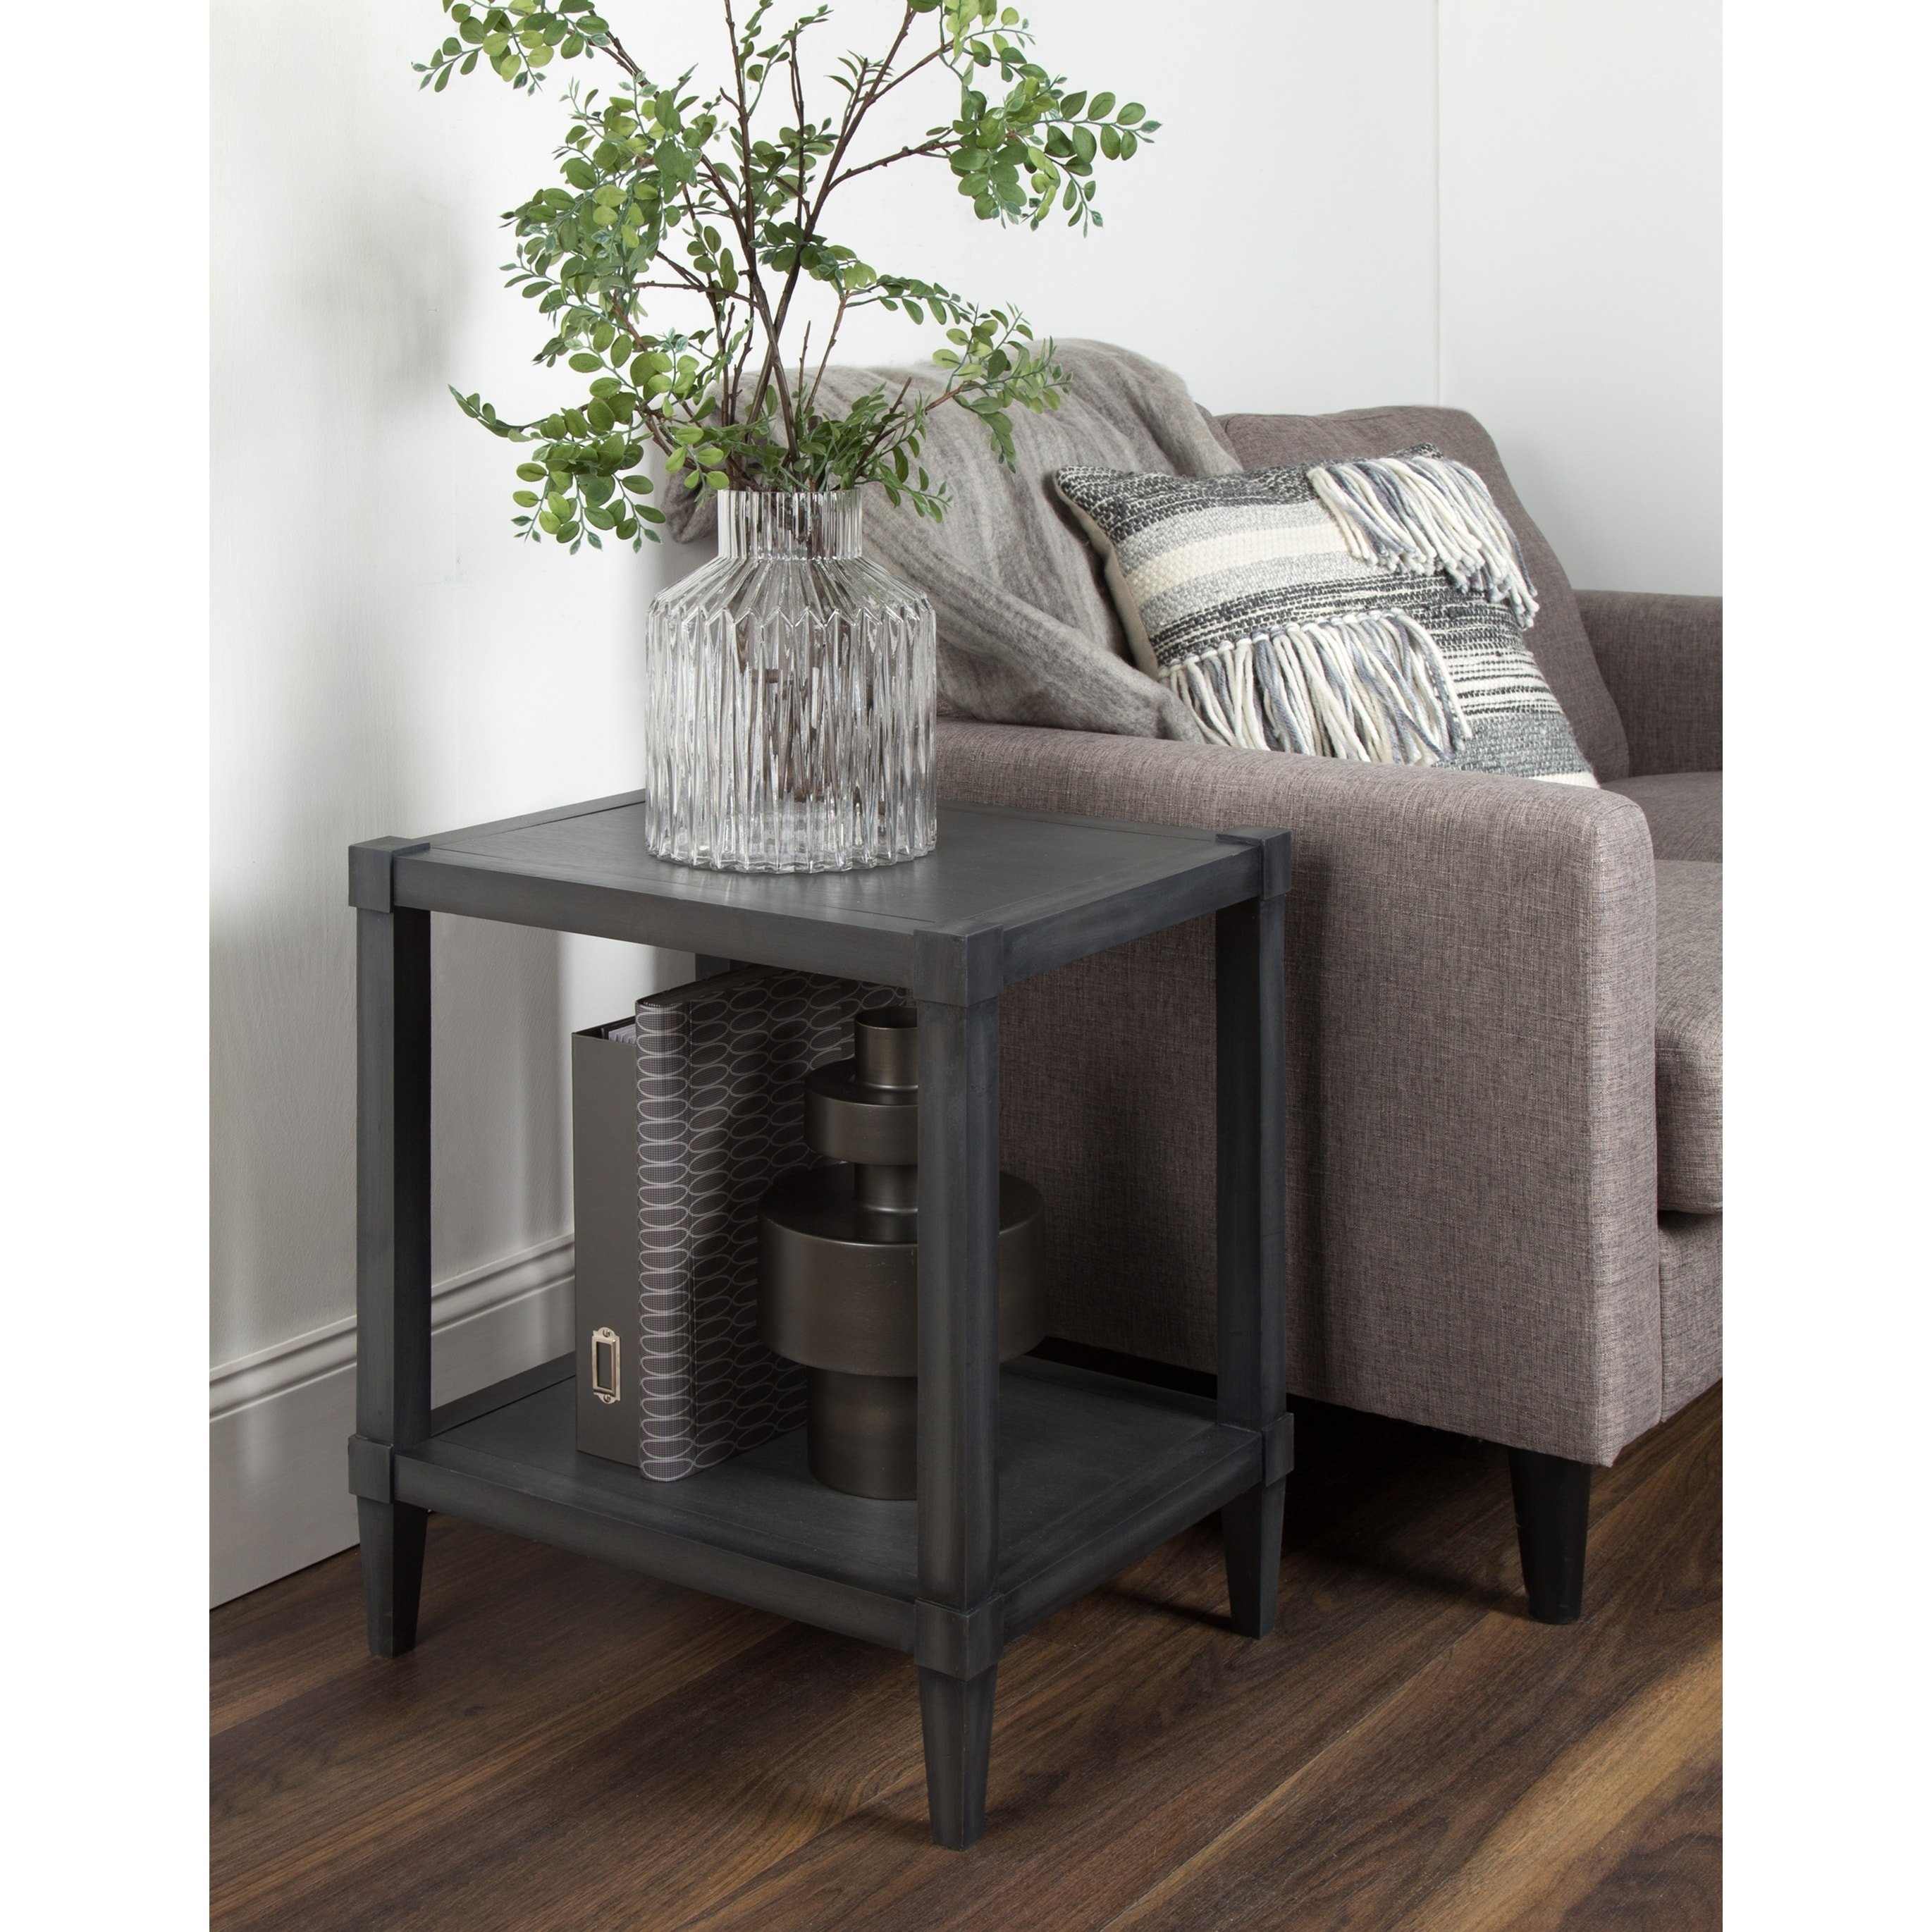 rio wooden side accent table with lower shelf dark gray pipe end wood coffee metal frame small decorative tables front porch bench brown entry black long skinny owings target drum